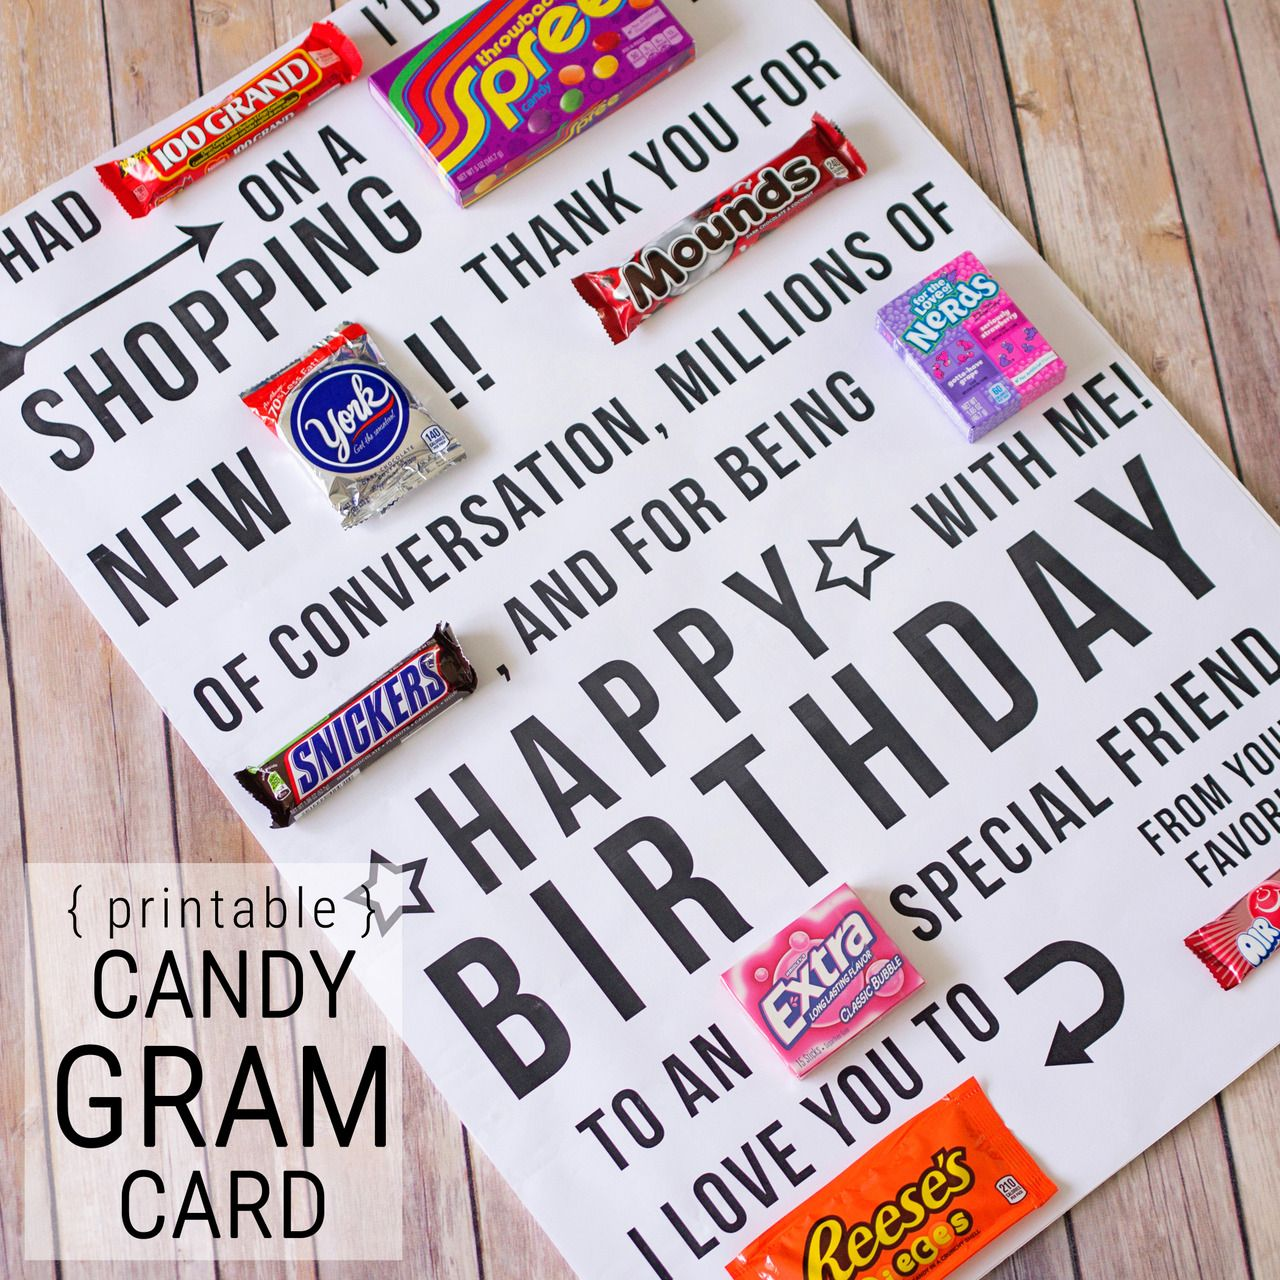 Candy Gram Birthday Card Printable Who Arted Candy Birthday Cards Birthday Card Printable Candy Cards